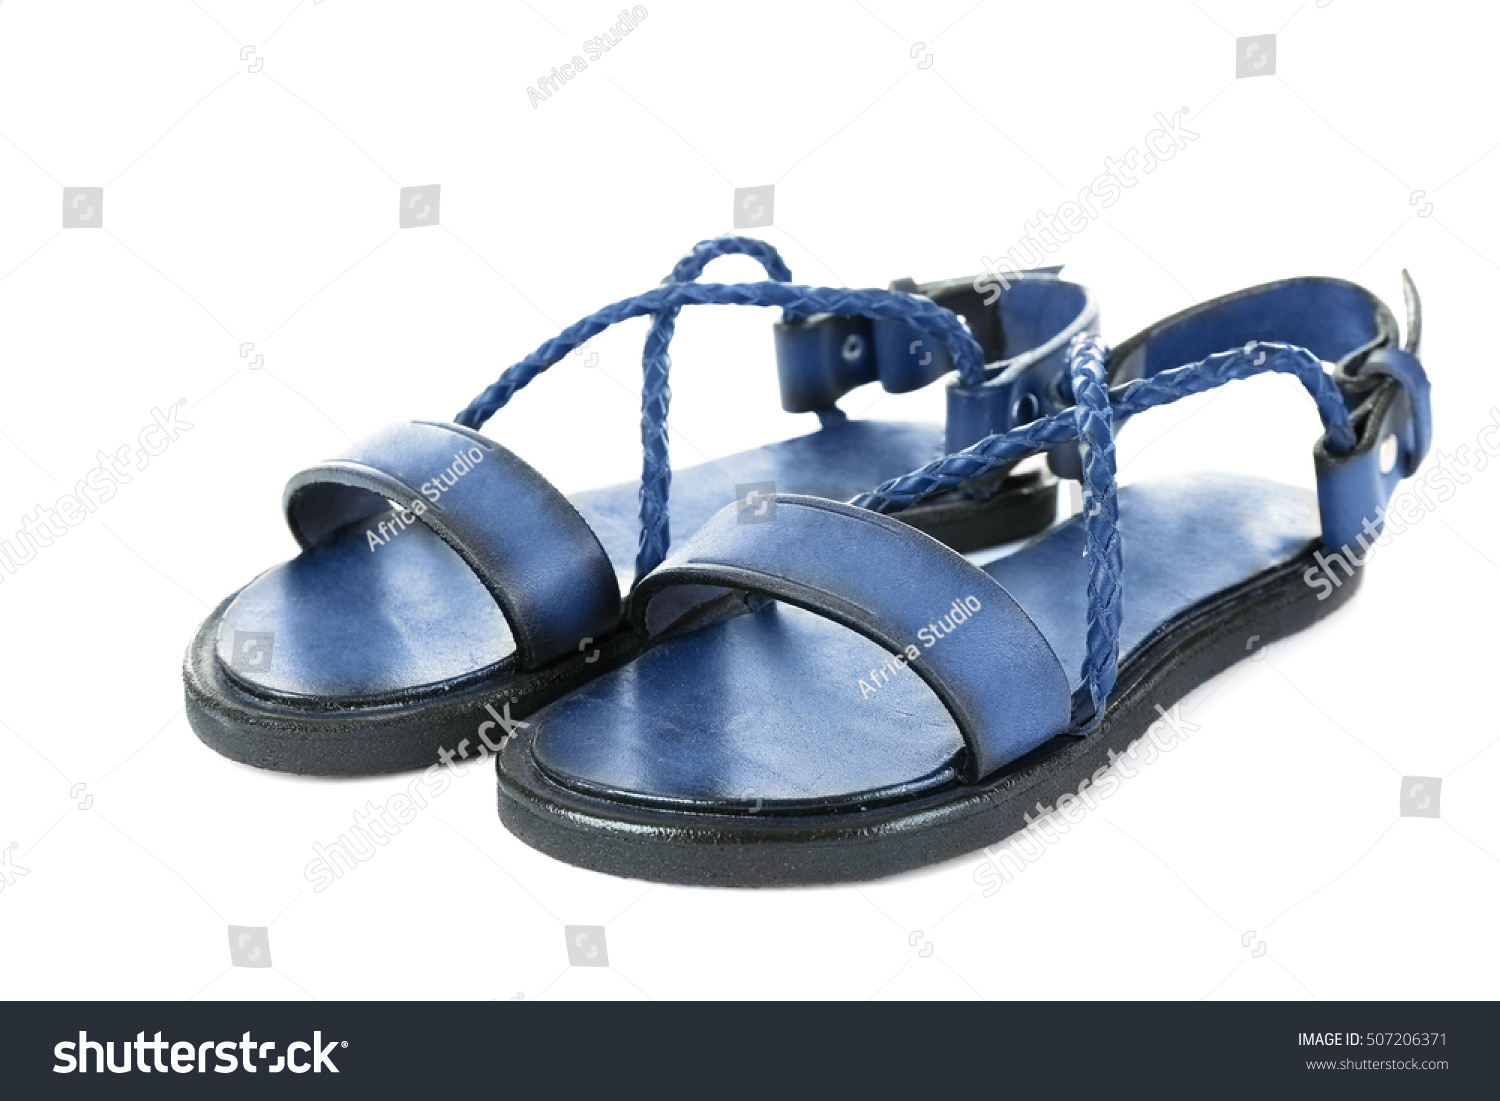 259c0aaadb7c Black leather sandals isolated on white